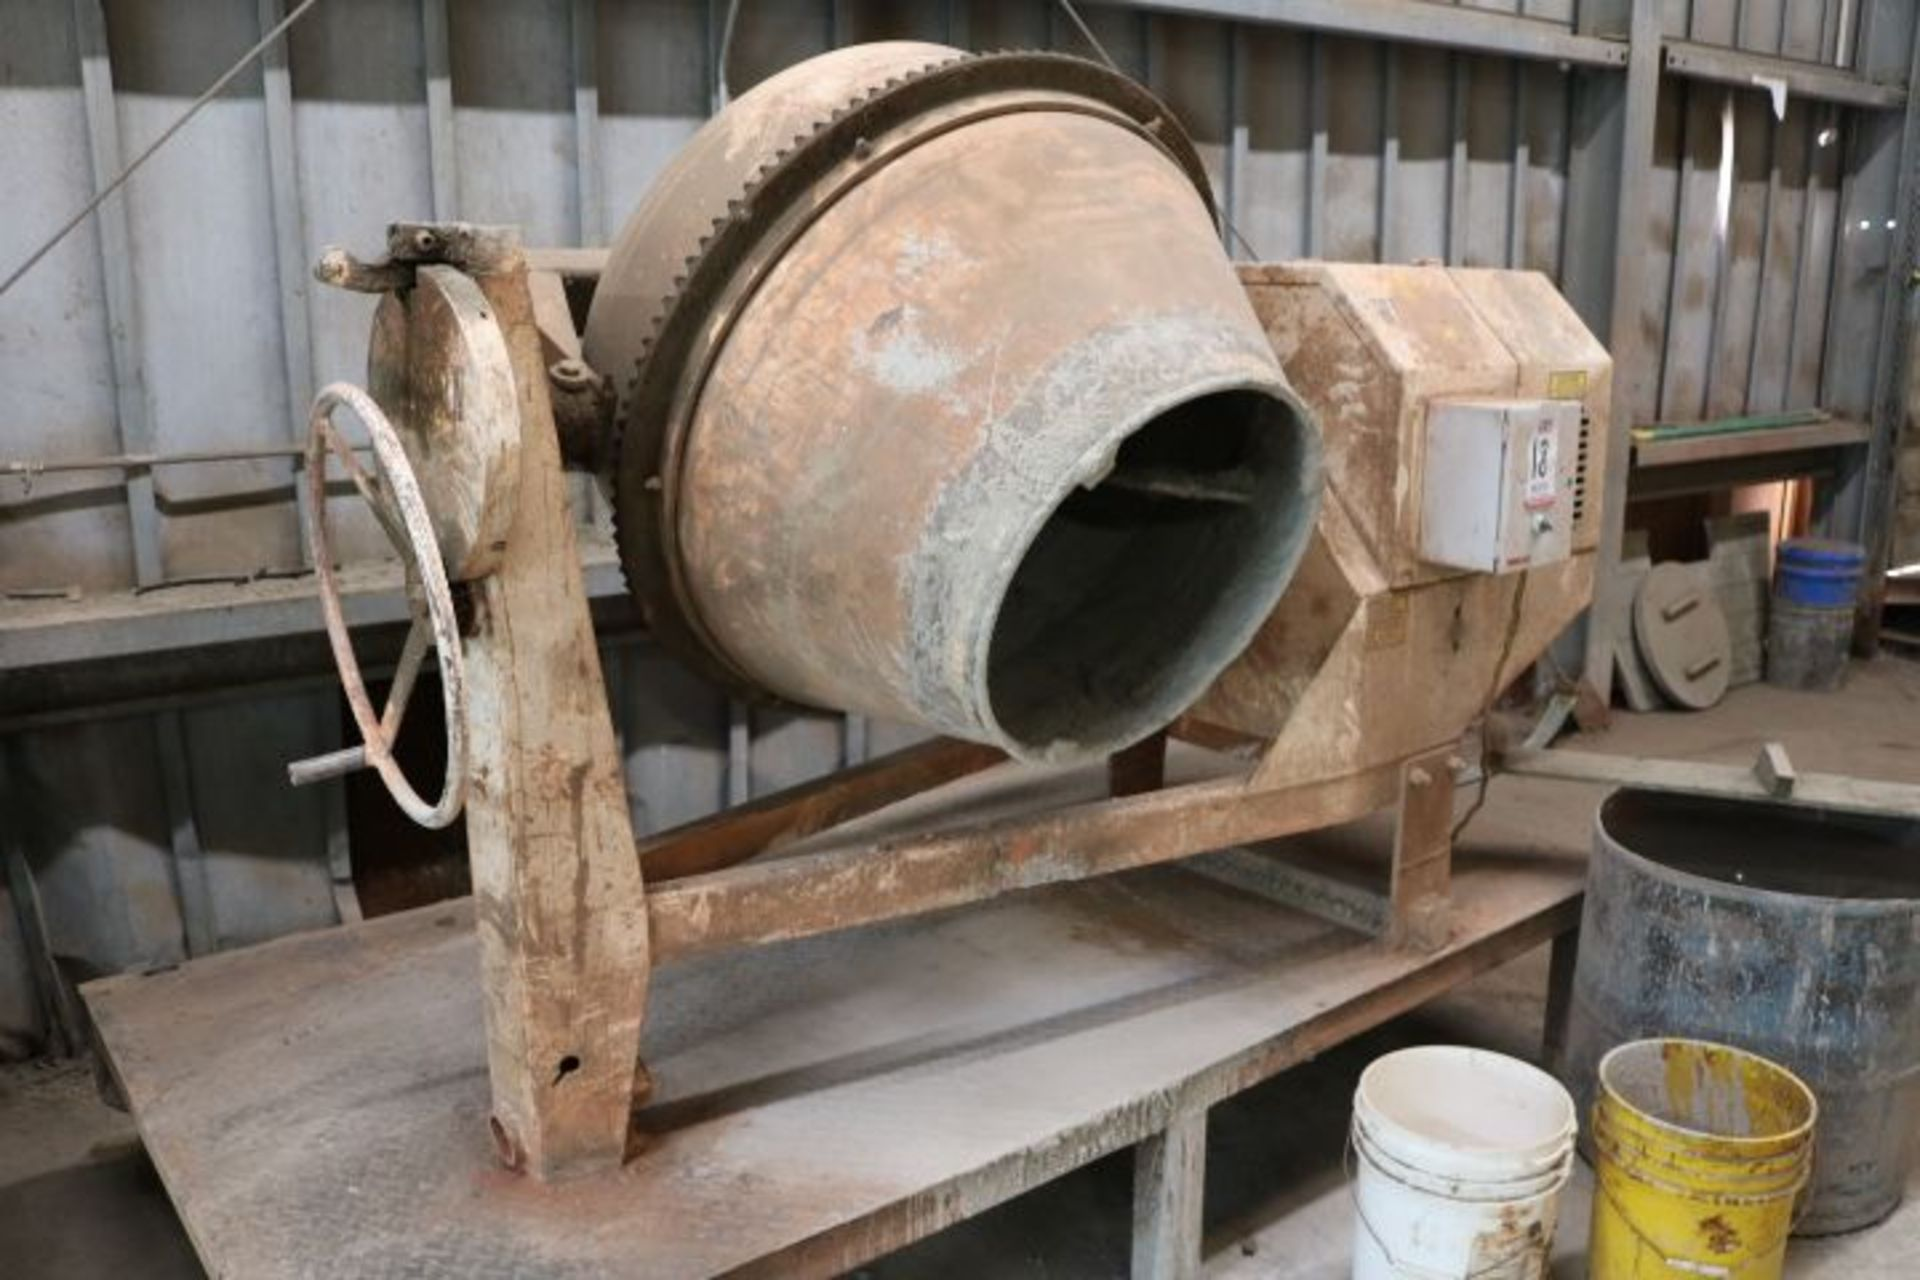 Lot 18 - WESTERN MANUFACTURING BATCH TYPE CEMENT MIXER, DATA PLATE OBSCURED